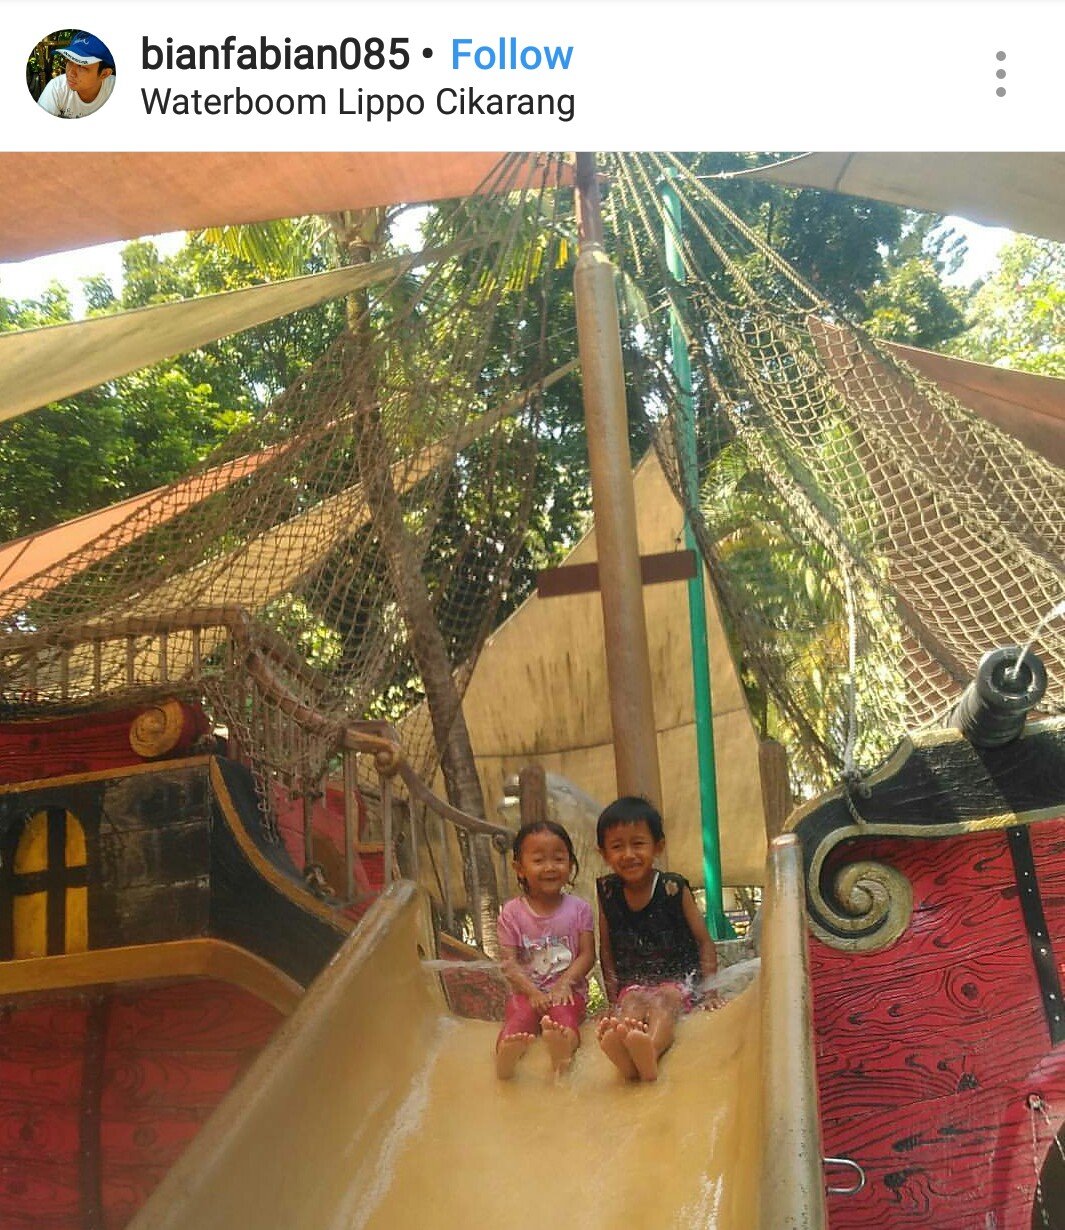 Pin Waterboom Lippo Cikarang Promo Images To Pinterest Voucher Water Boom Top For On 12 11 2018 0115